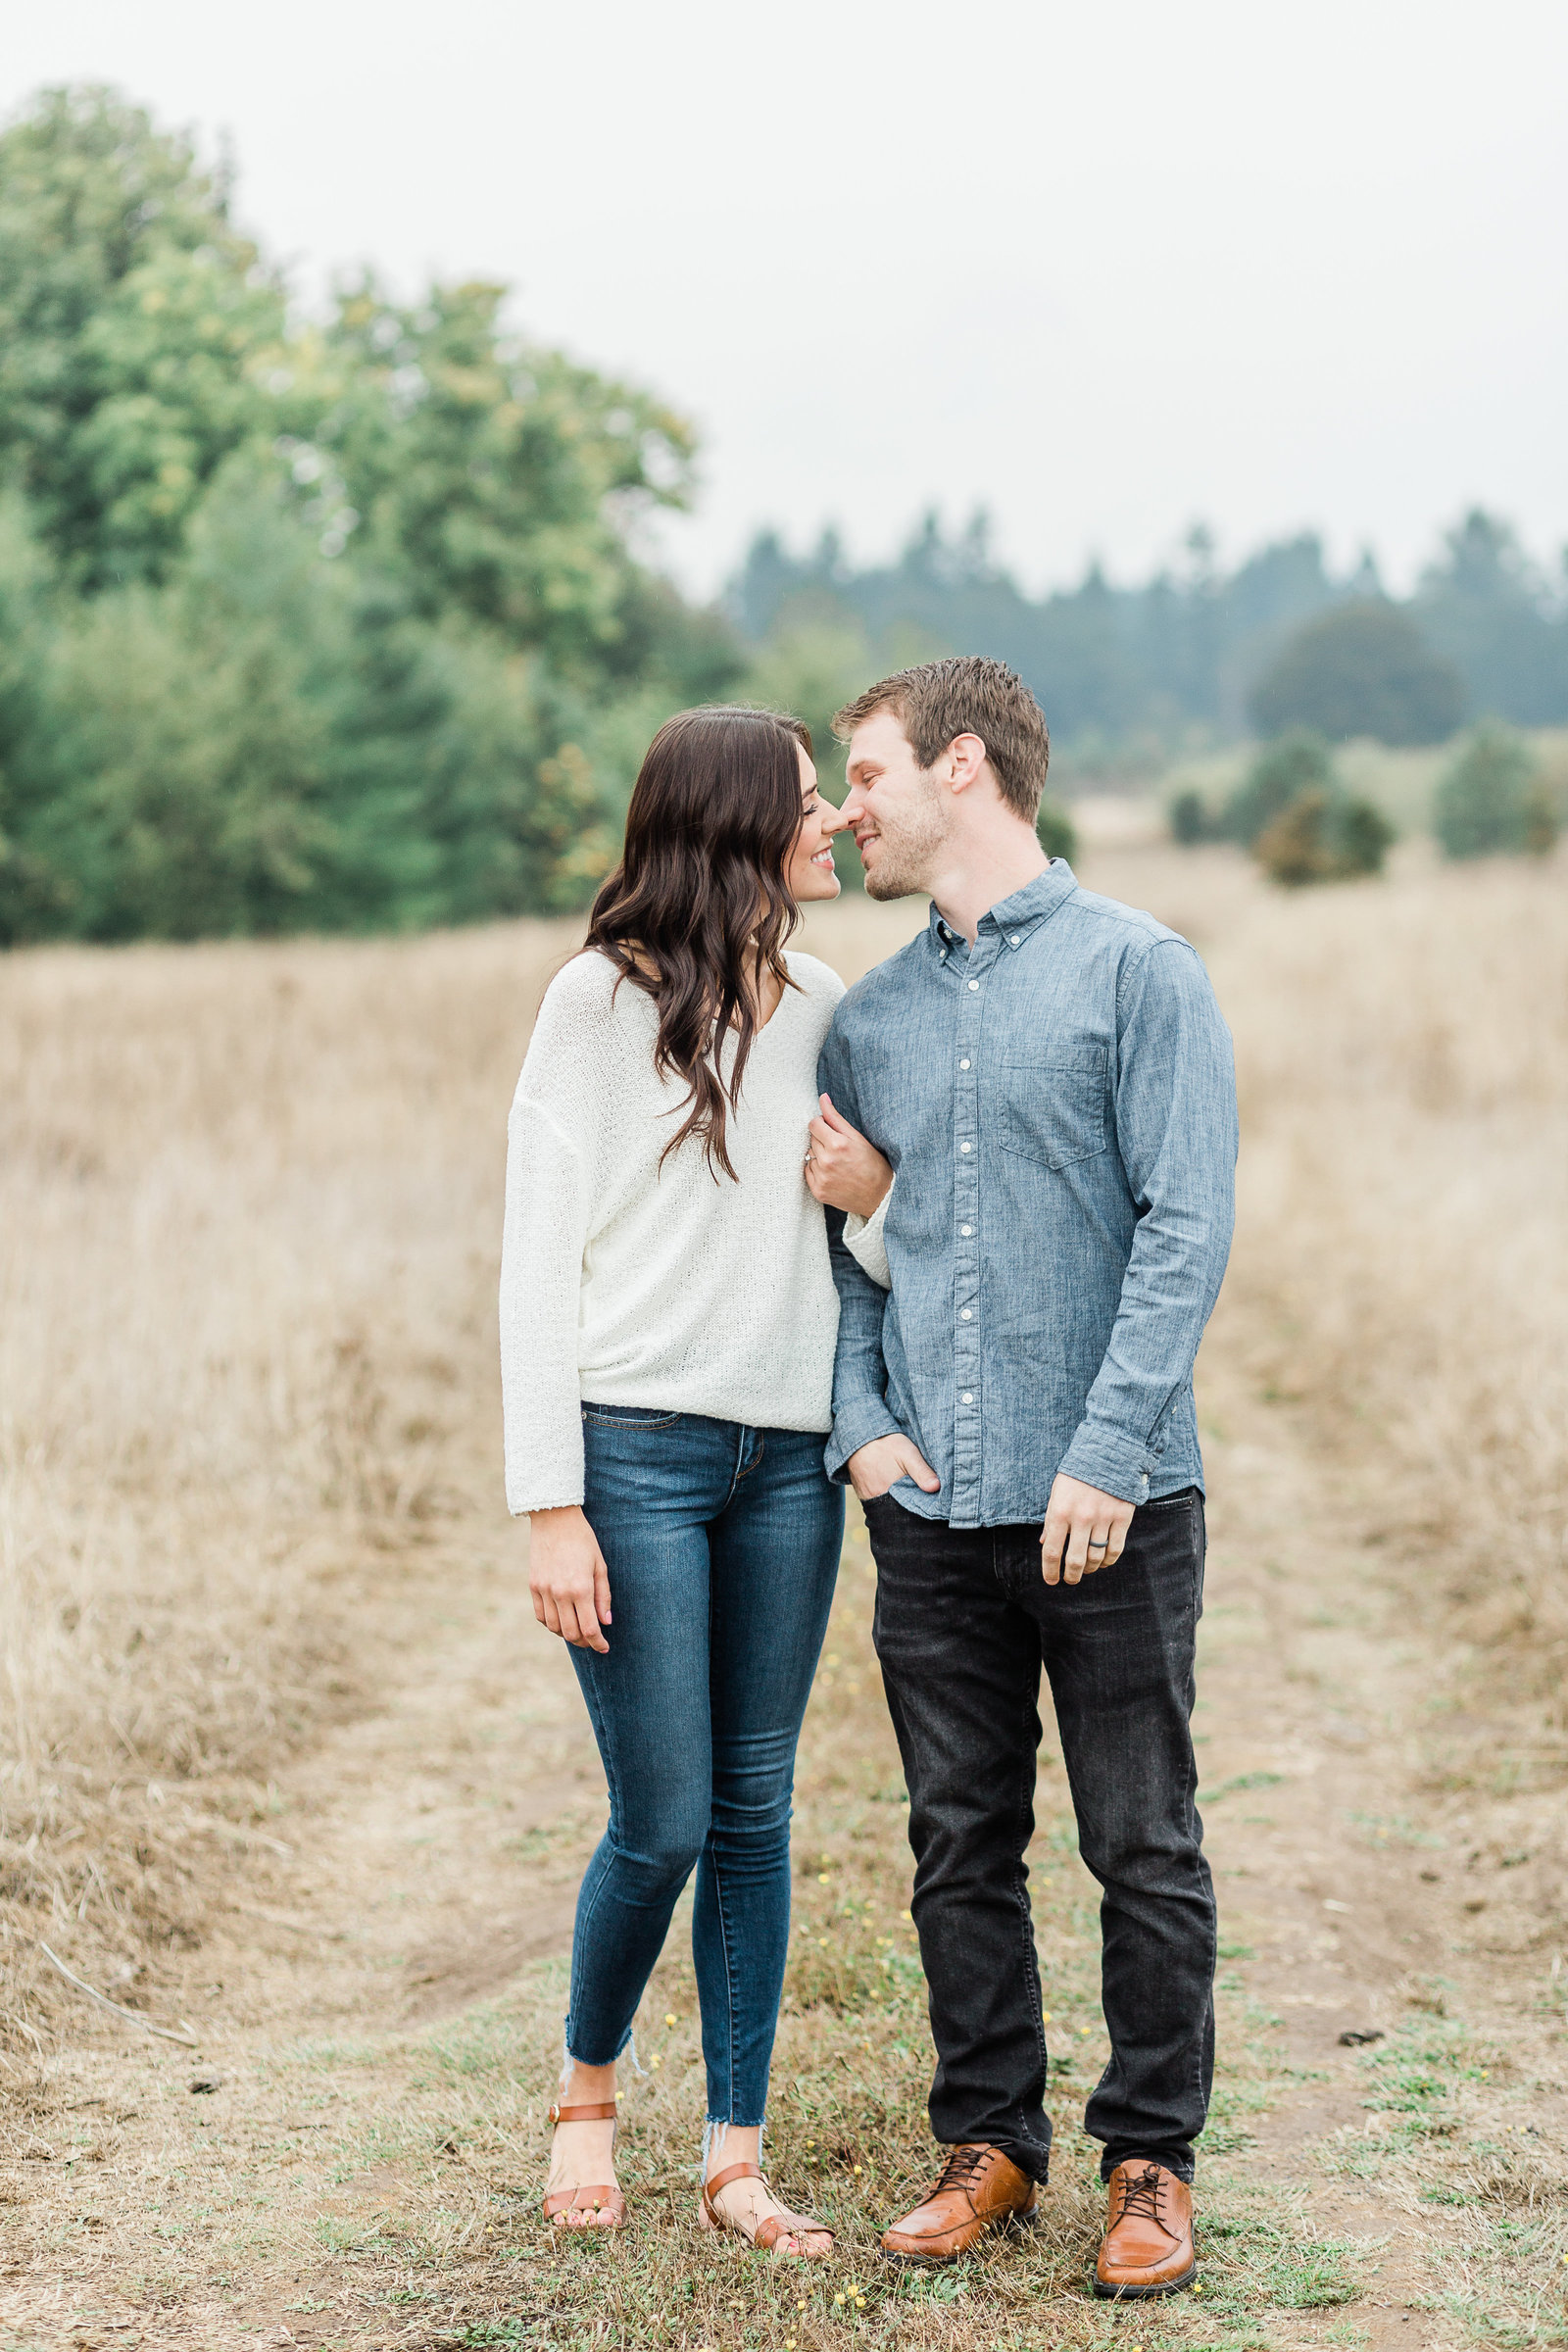 Taylor-TJ-Engagements-Georgia-Ruth-Photography-22